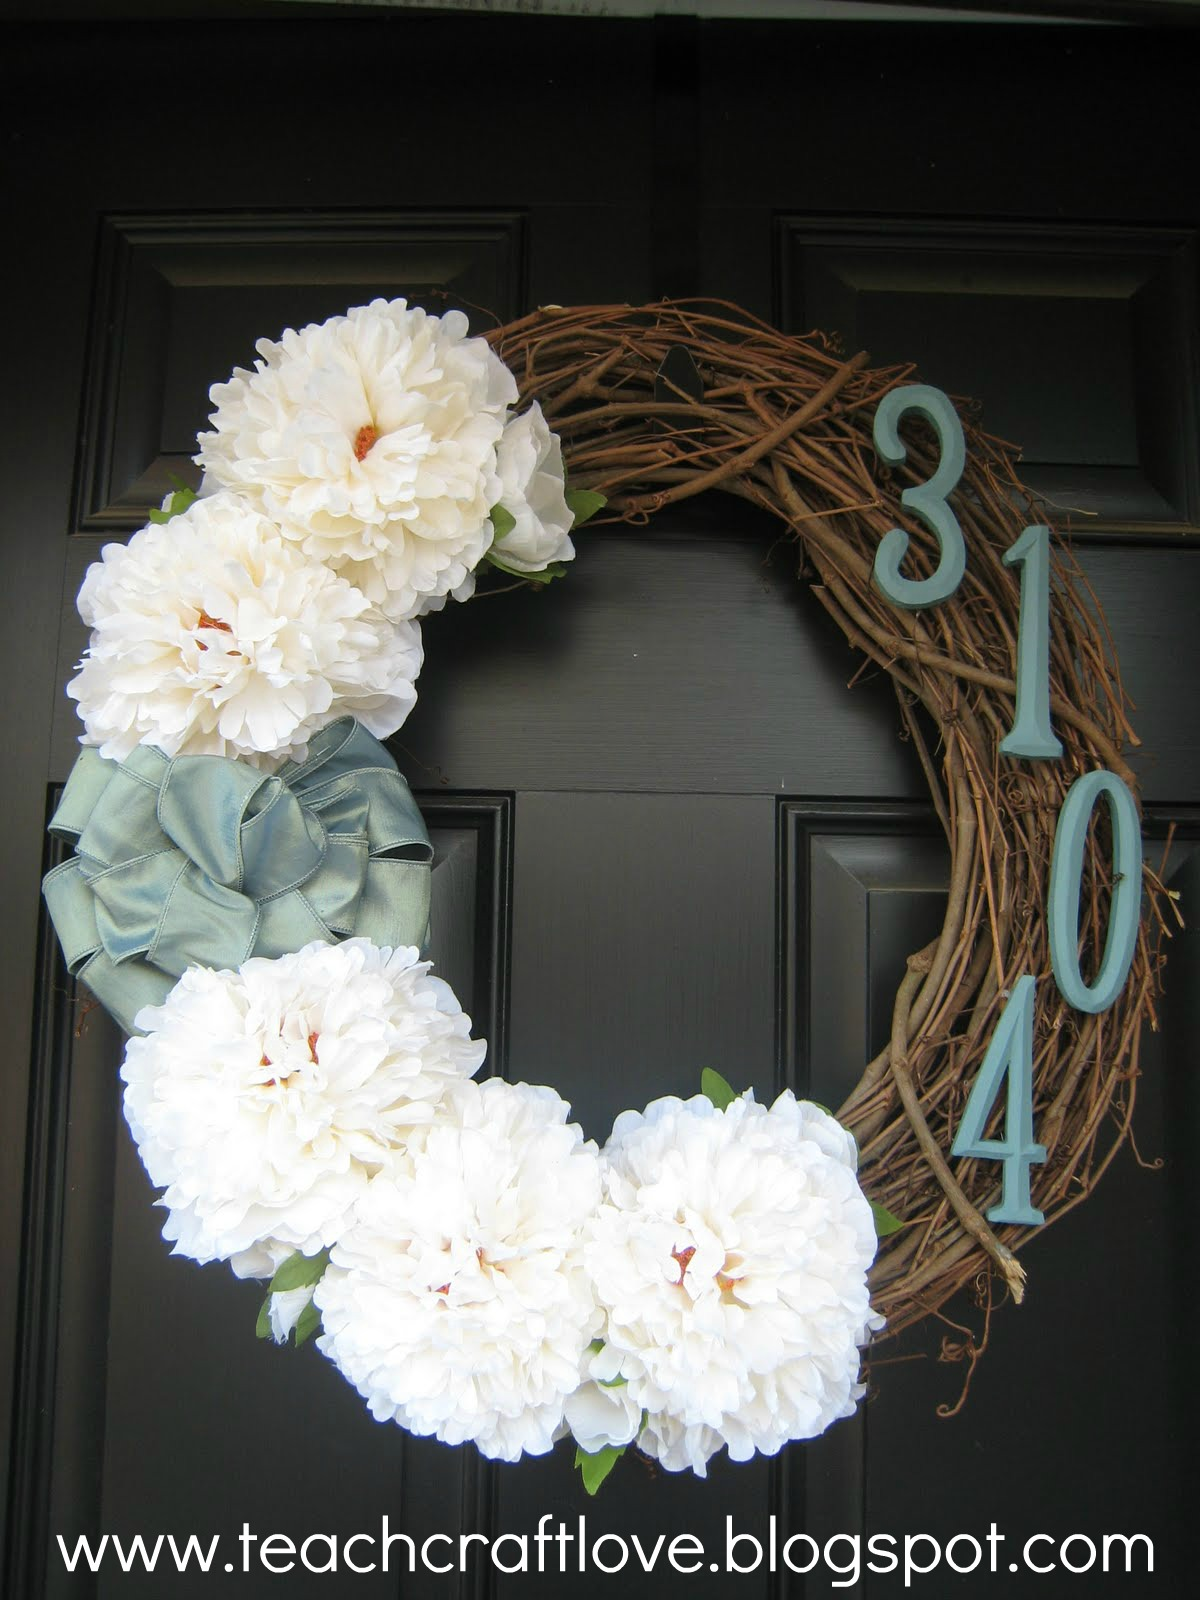 Teach craft love front door wreaths for Baby shower front door decoration ideas